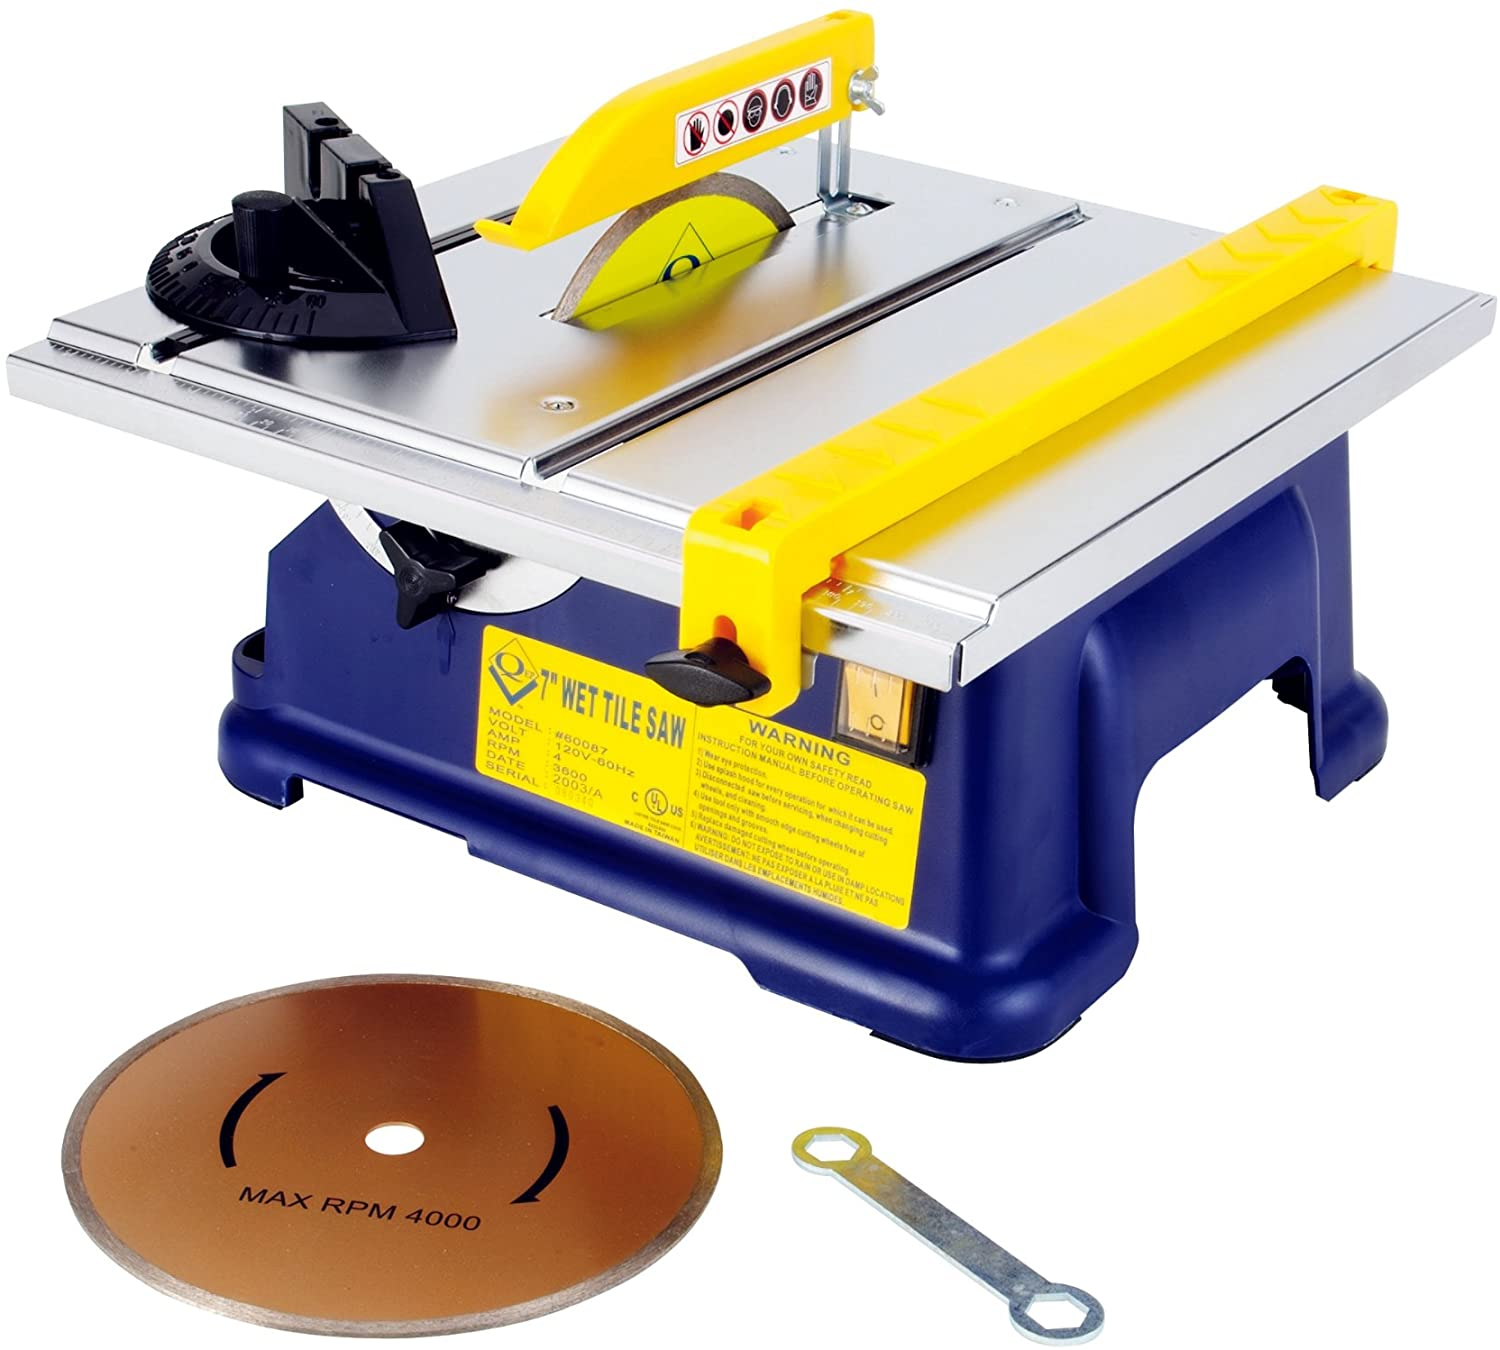 qep 60087 7 inch tile saw with water